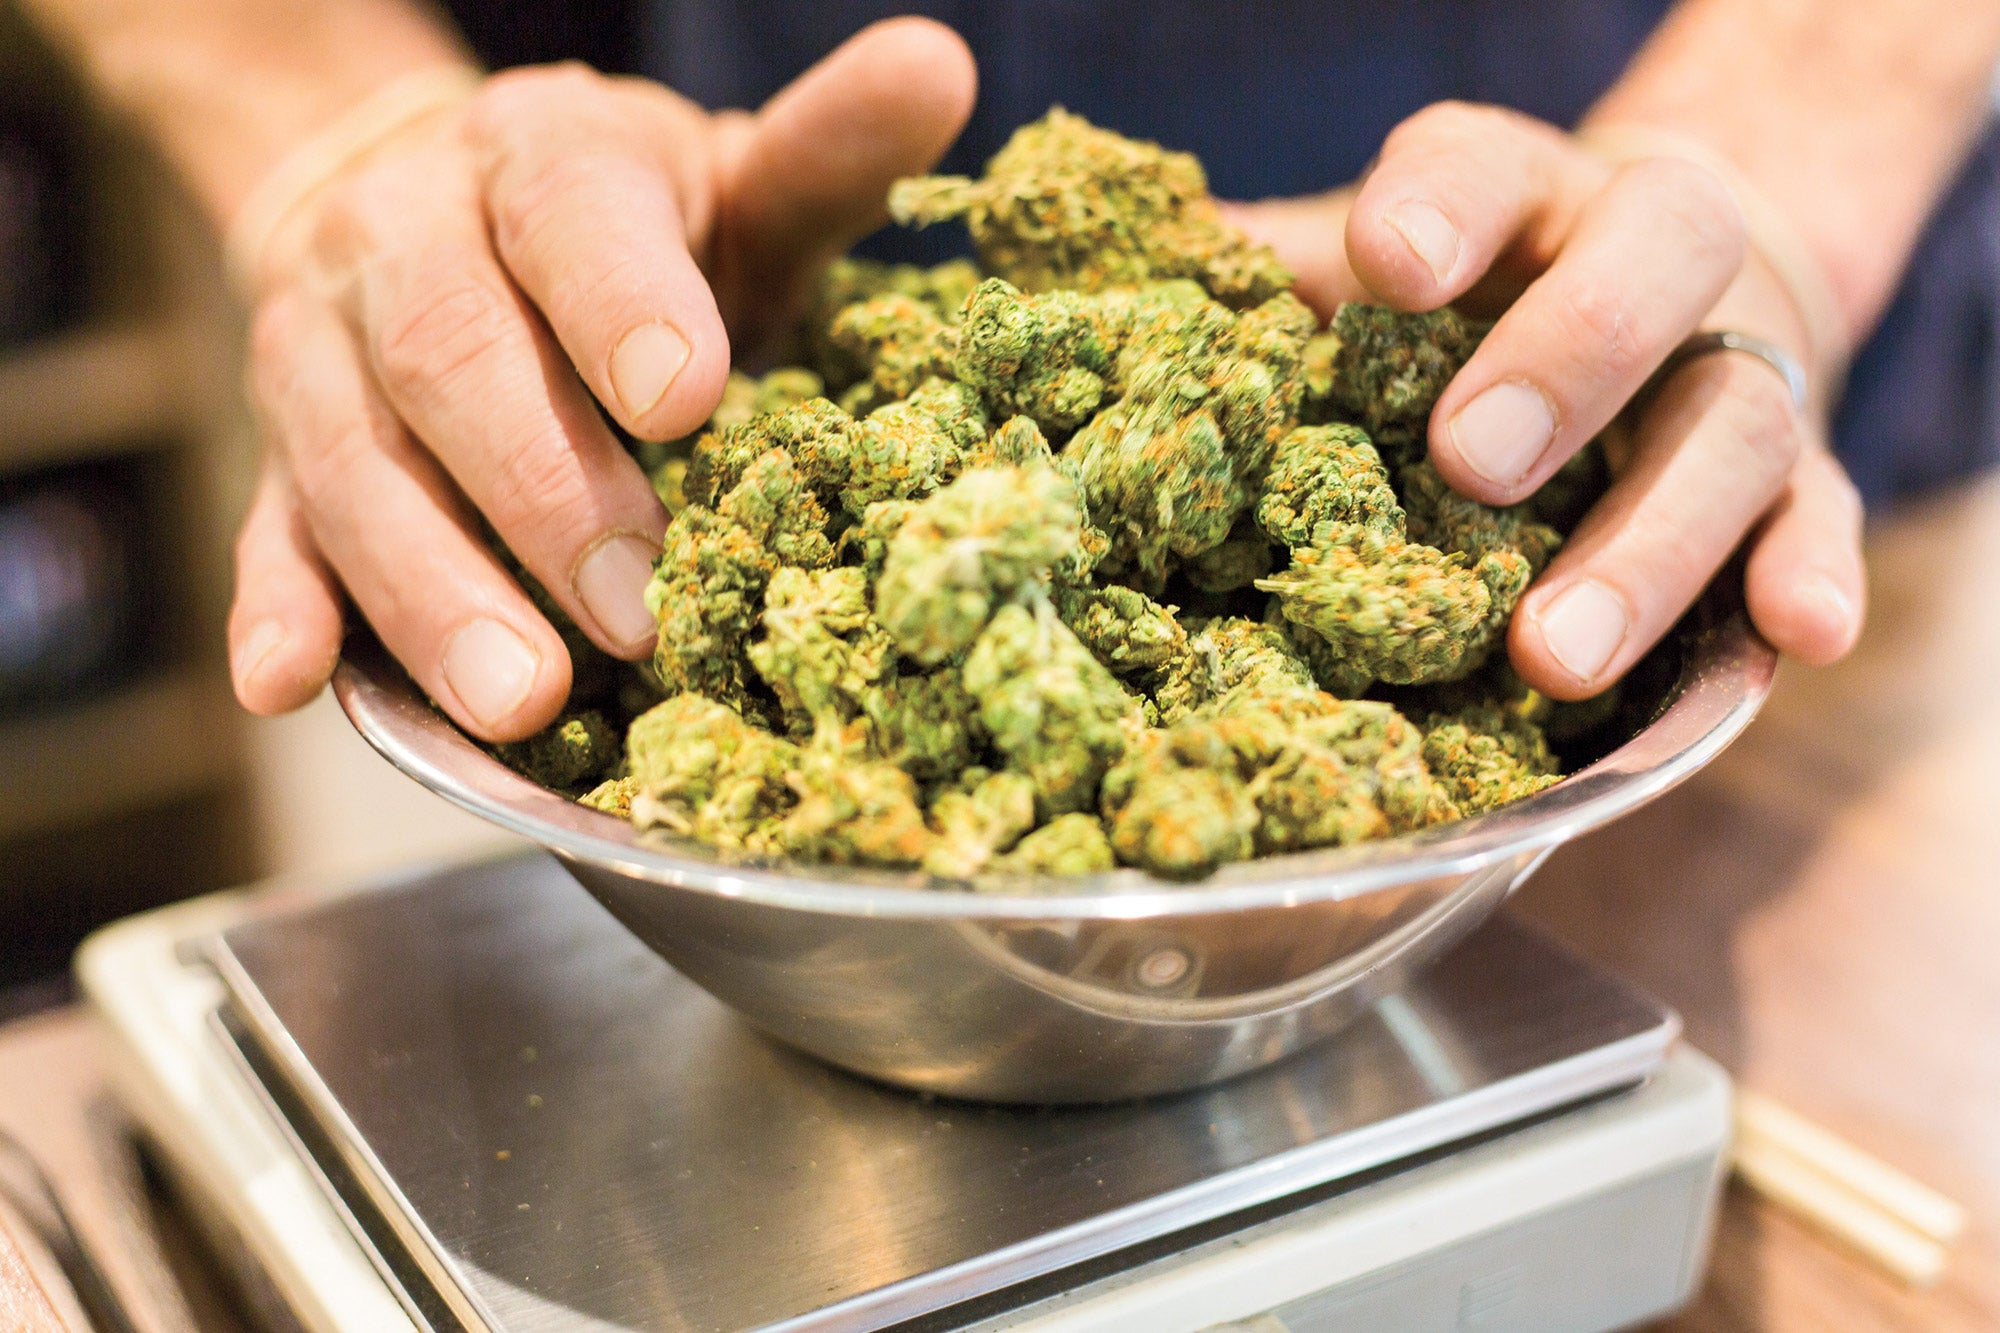 What This Medical Marijuana Company Can Teach You About Getting Buzz